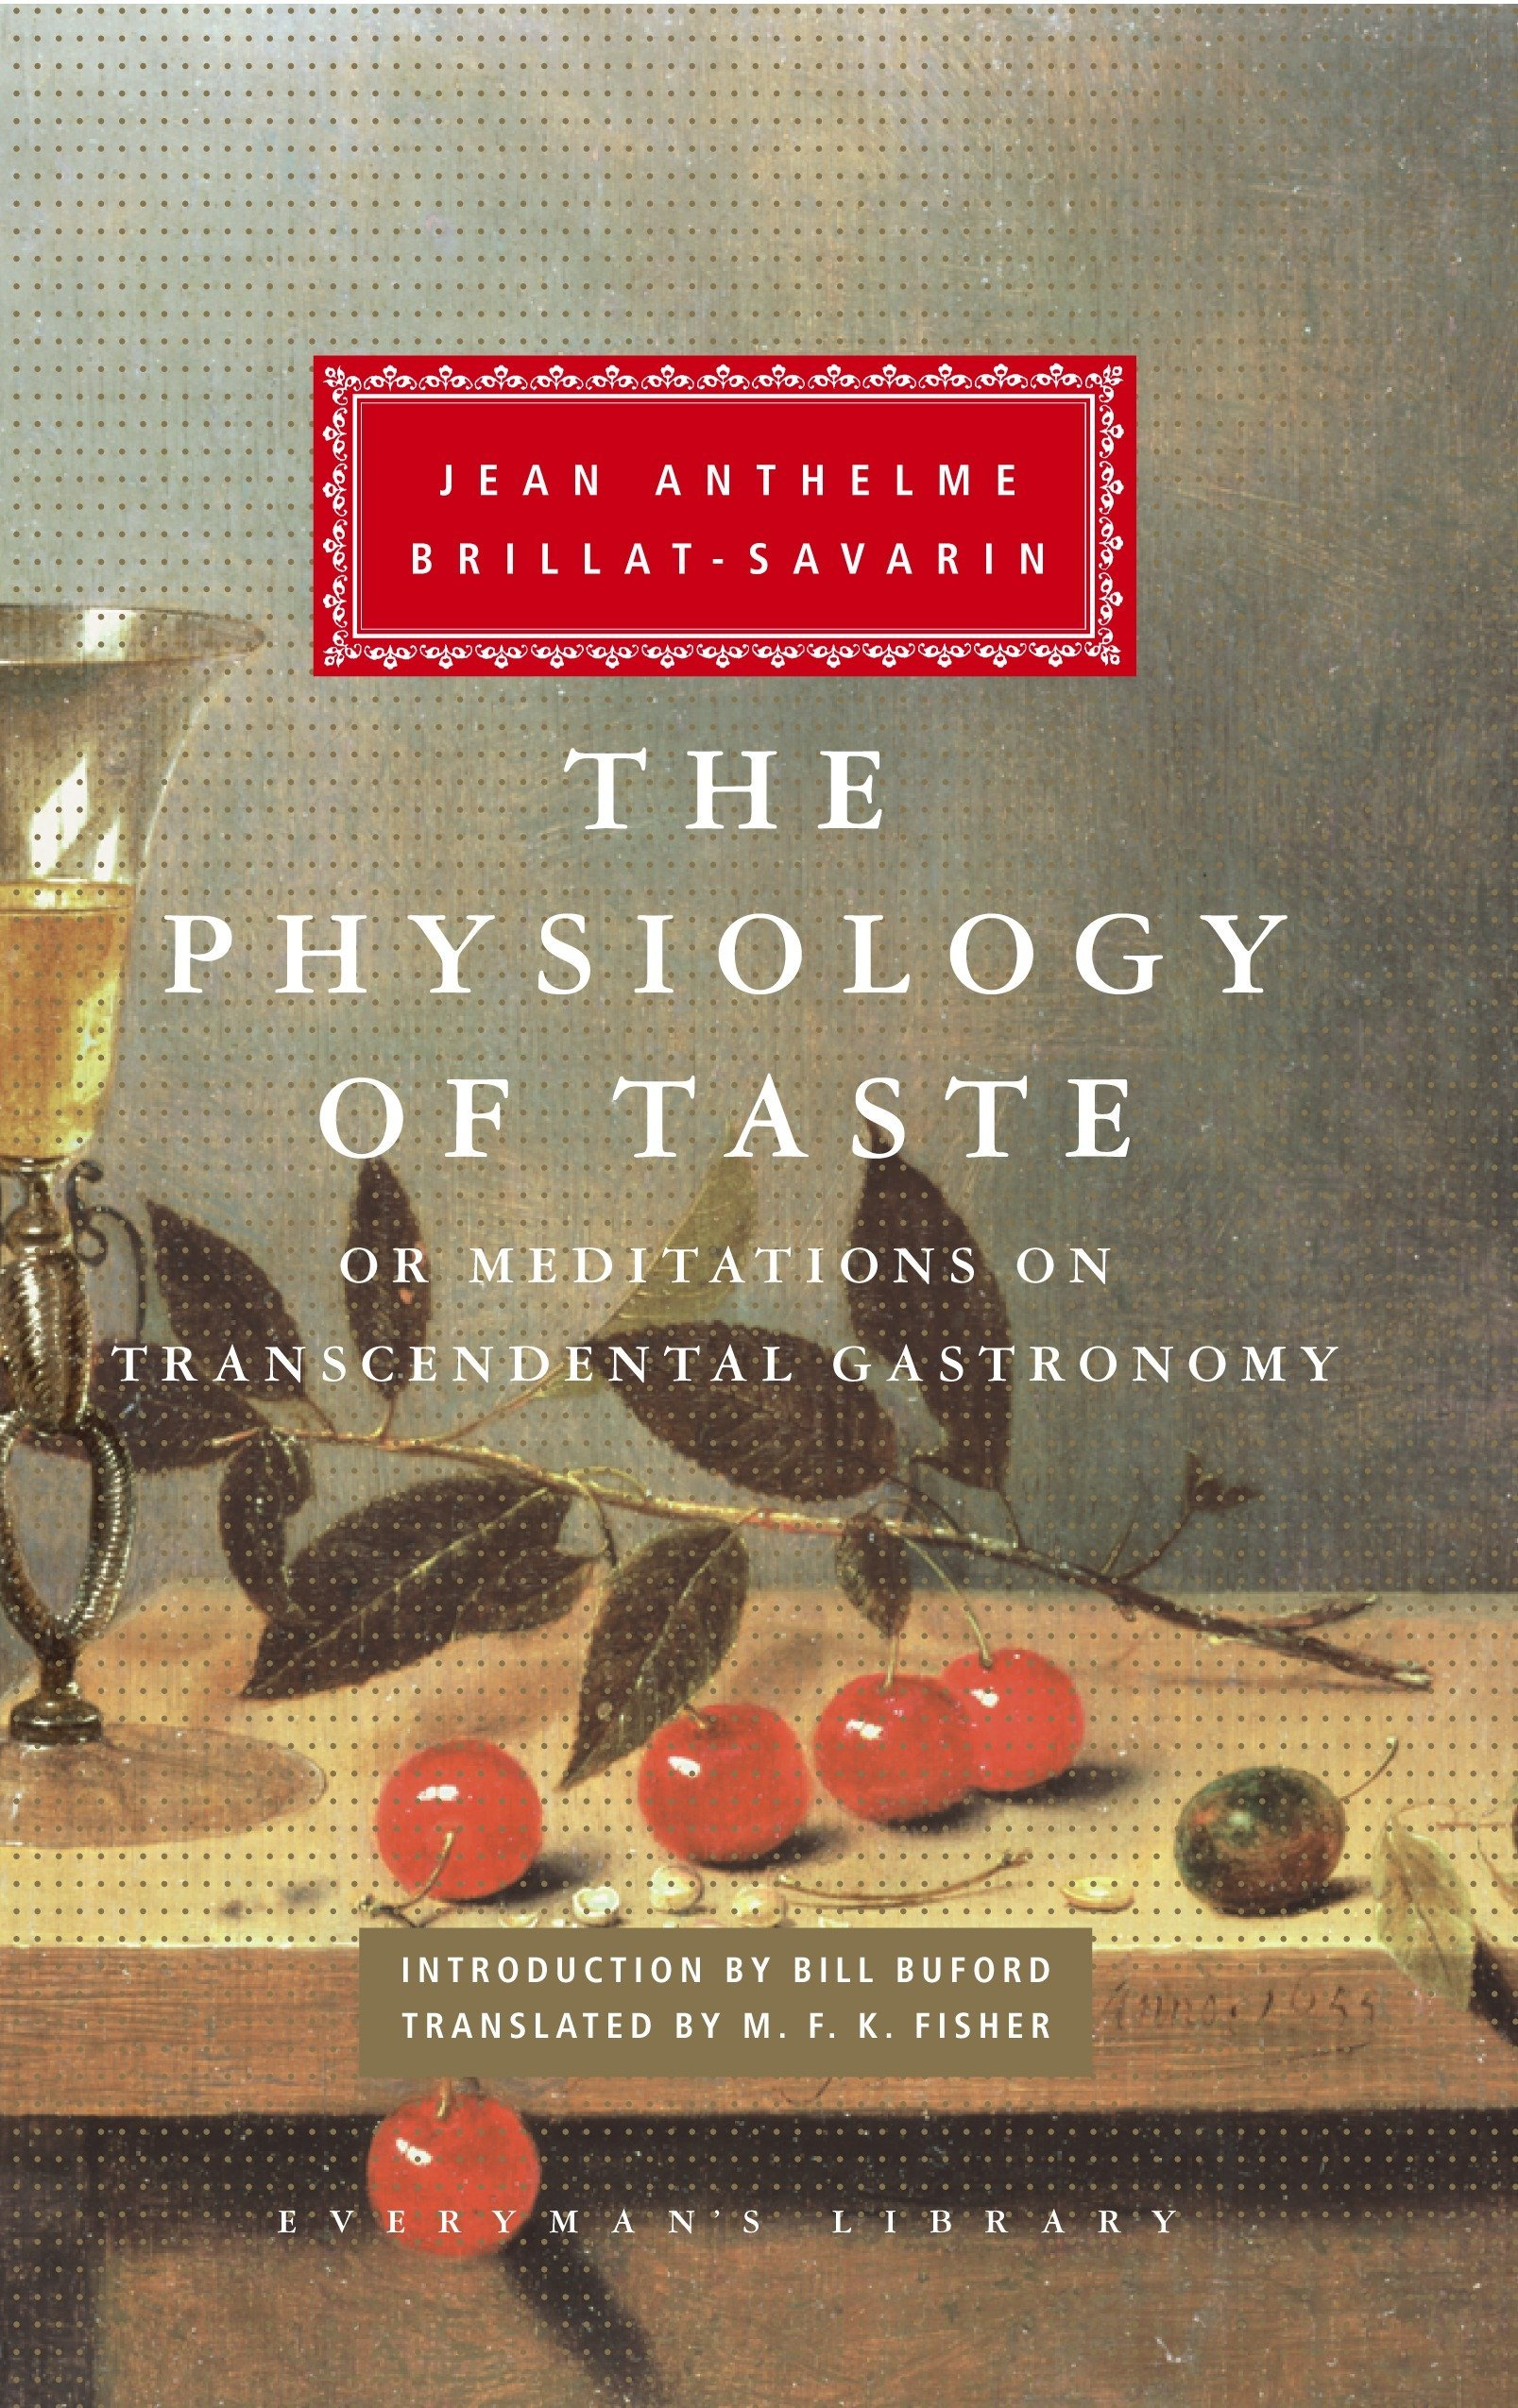 The Physiology of Taste: or Meditations on Transcendental Gastronomy (Everyman's Library) PDF